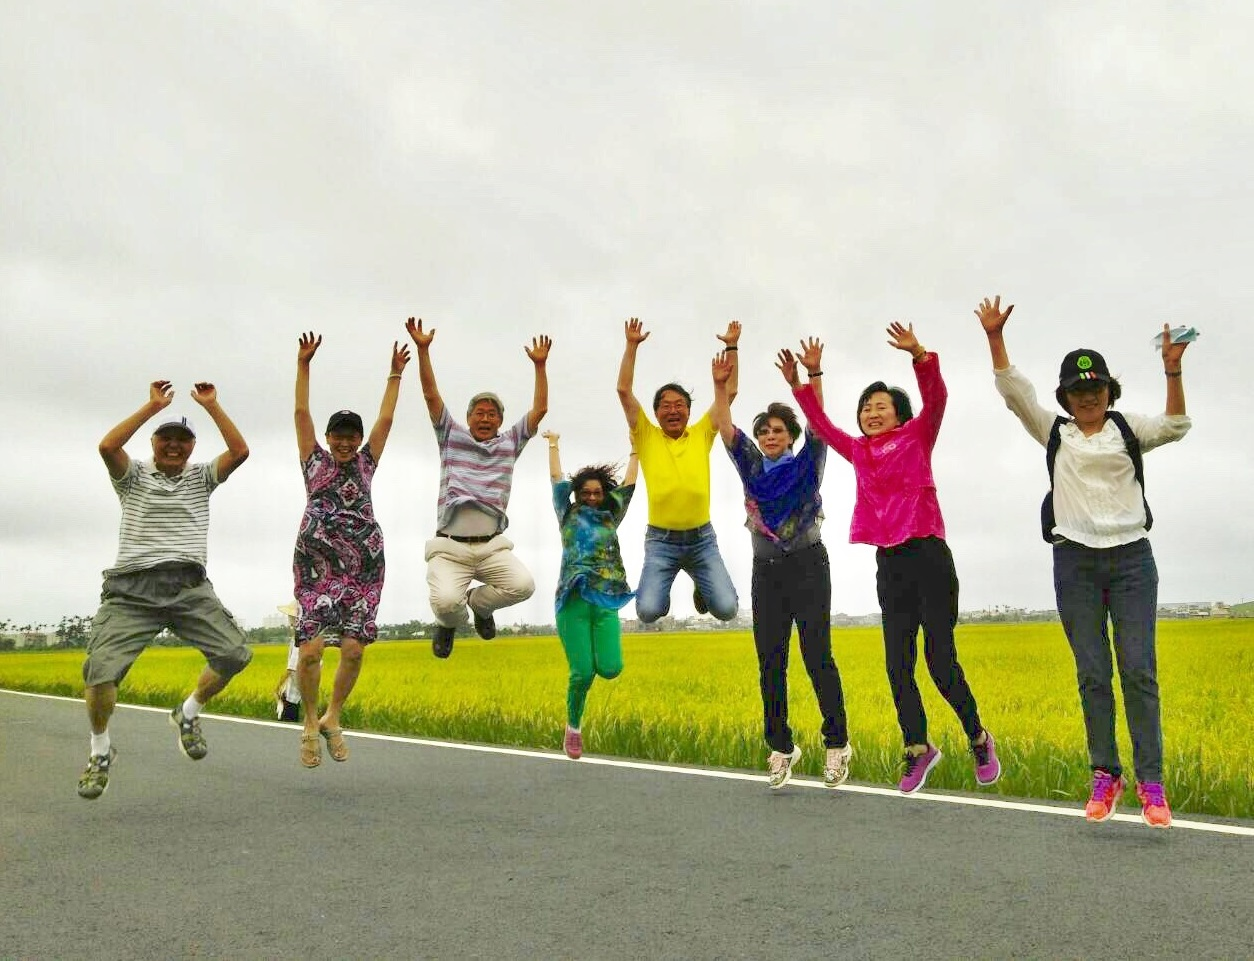 A group of visitors are having fun at Mr. Brown Avenue (伯朗大道) in Yilan. (Image: Courtesy of Liu Lichuan)